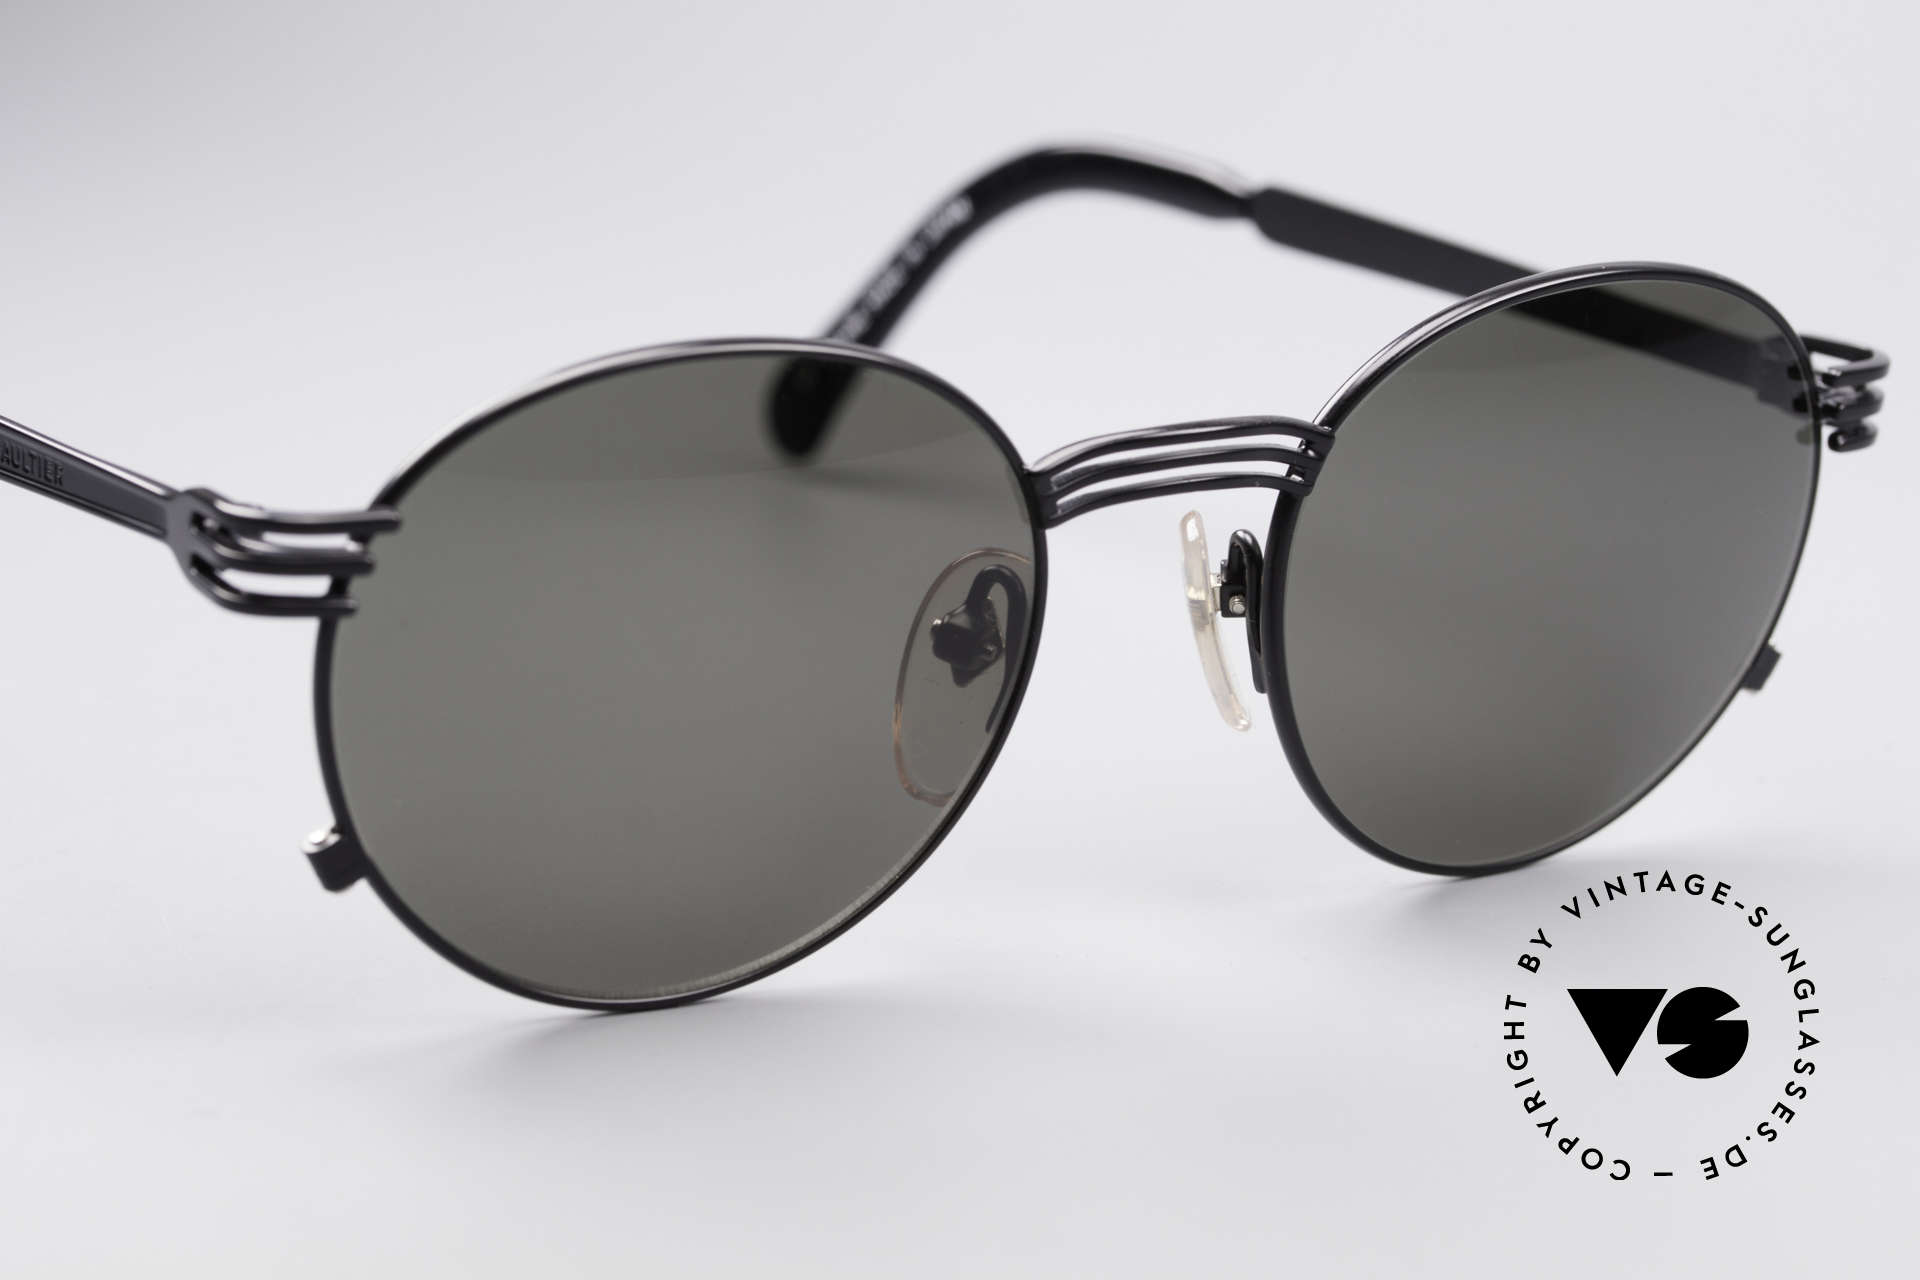 Jean Paul Gaultier 55-3174 Designer Fork Sunglasses, NO RETRO sunglasses, but a precious original from 1994, Made for Men and Women